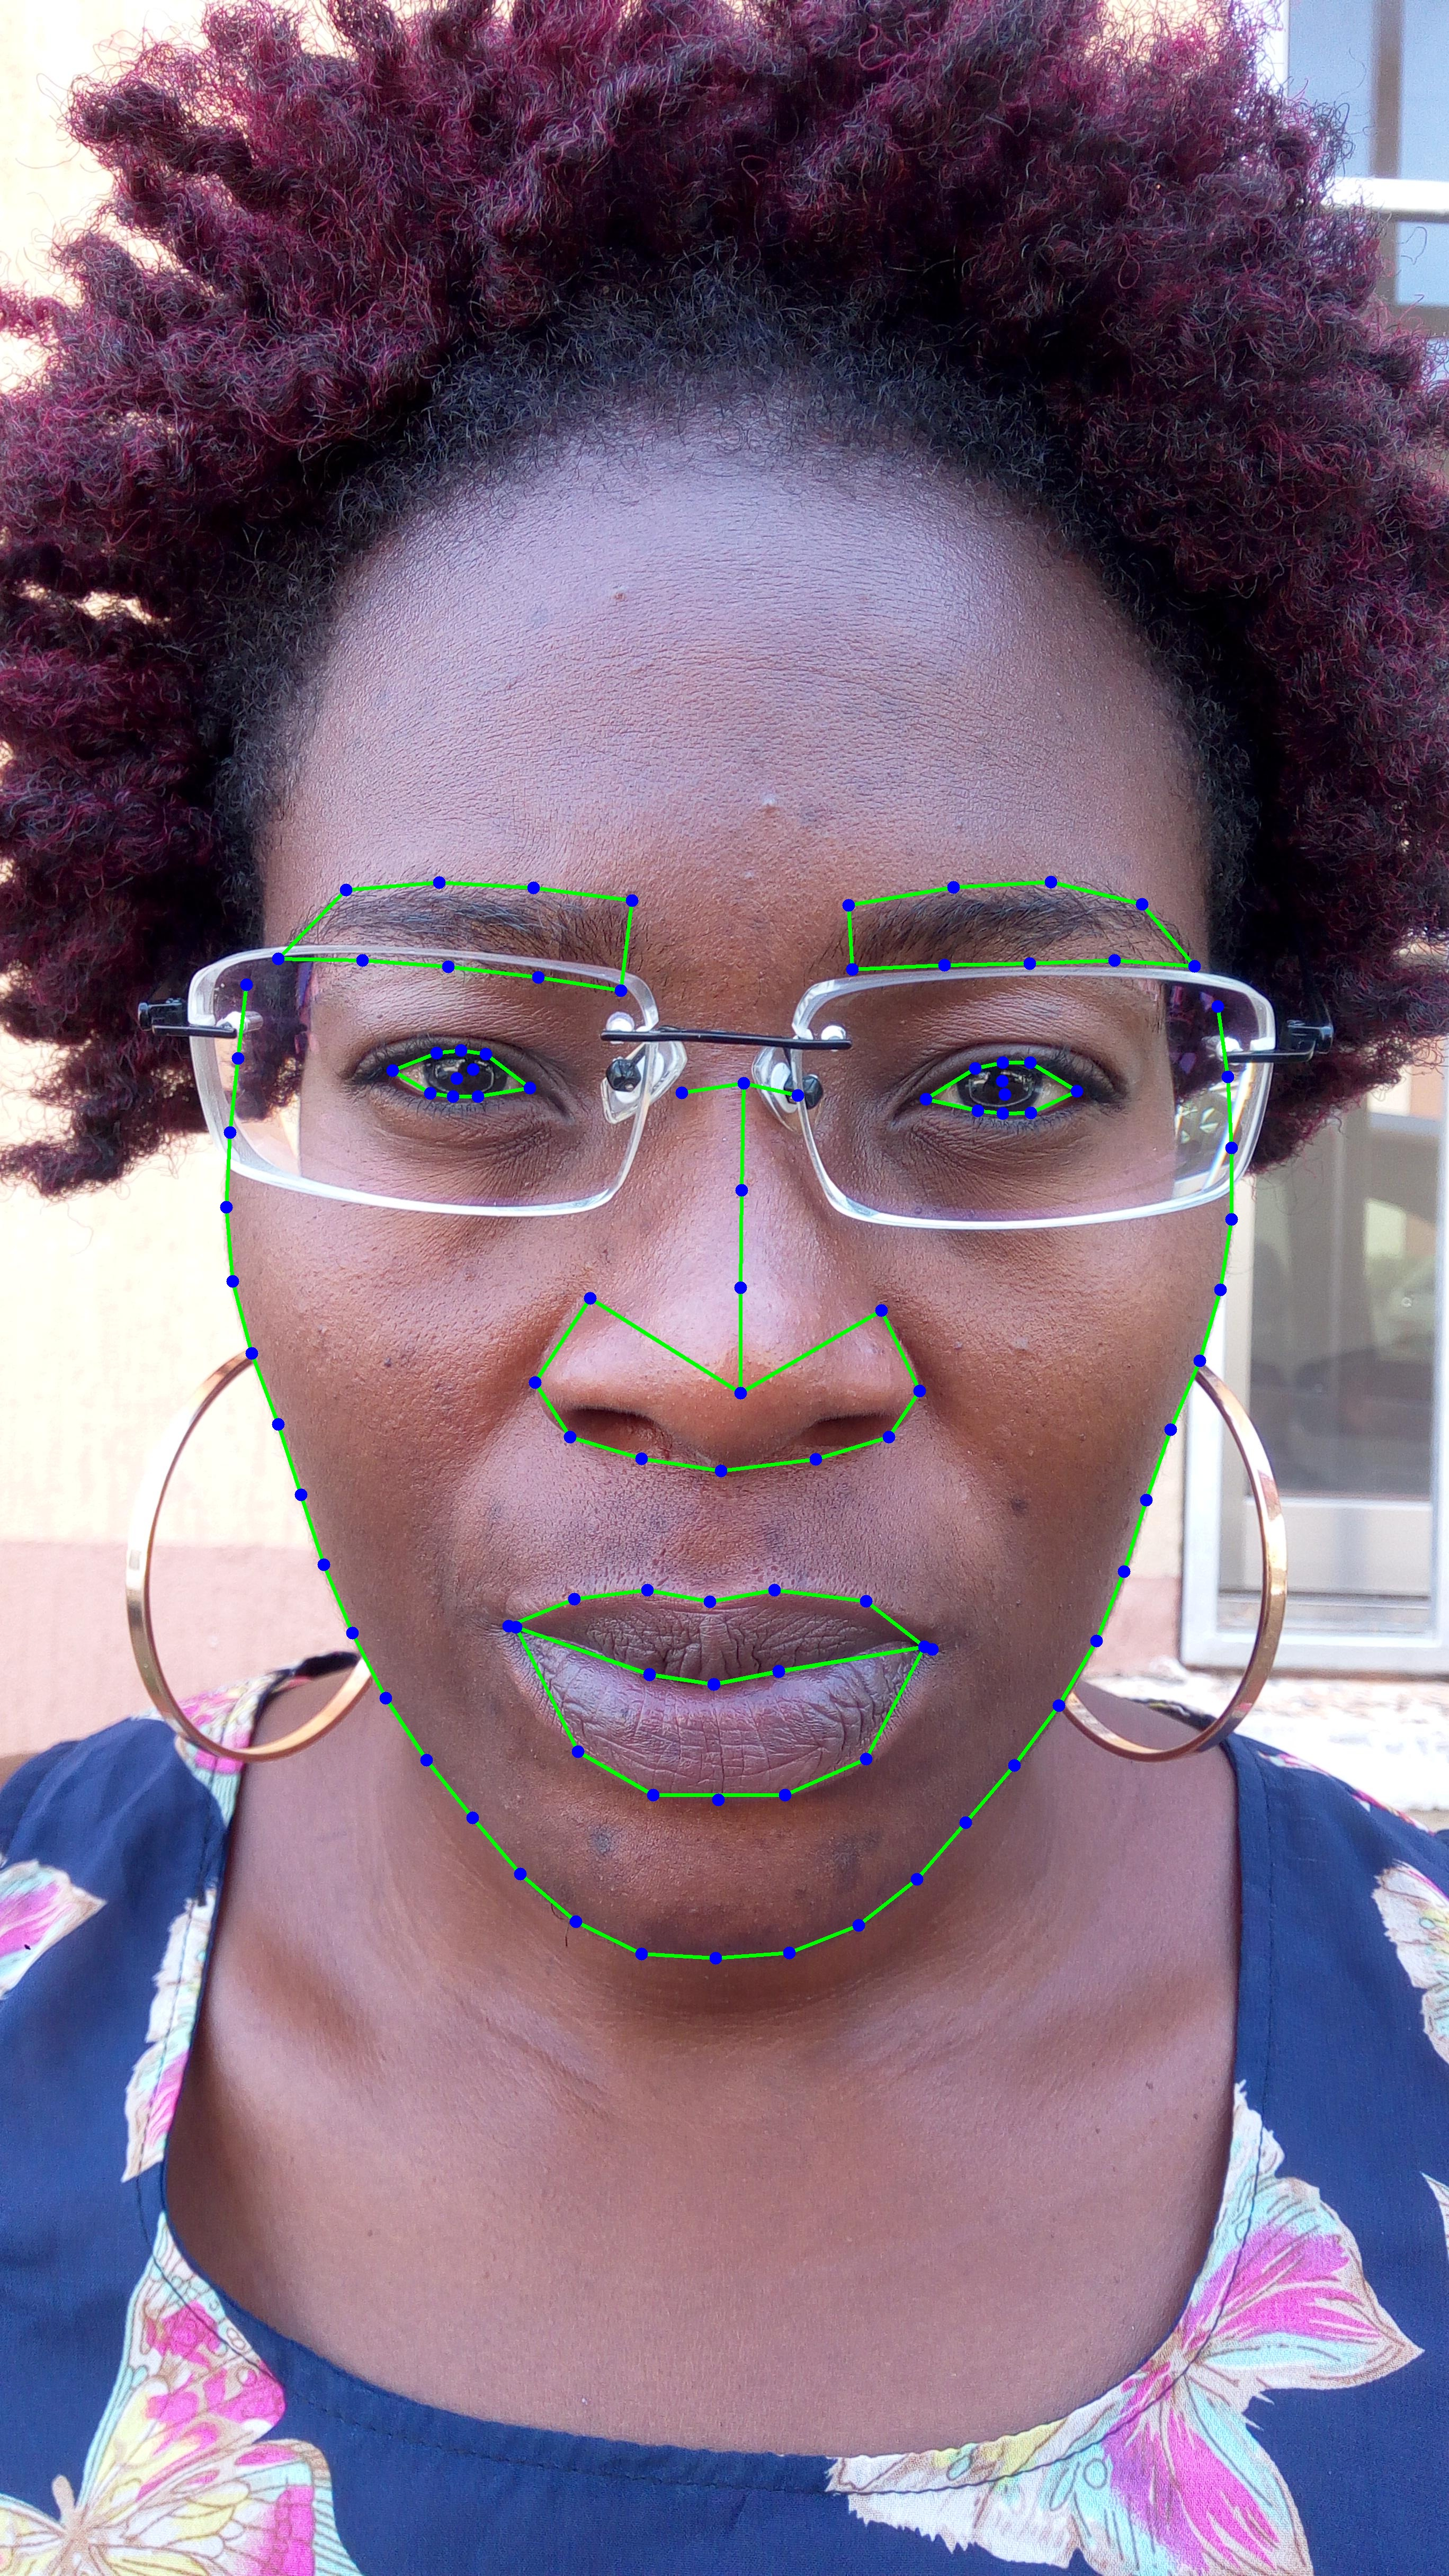 87,877 Images of 106 Facial Landmarks Annotation Data (complicated scenes)_Mobile APP Data Solution_Datatang